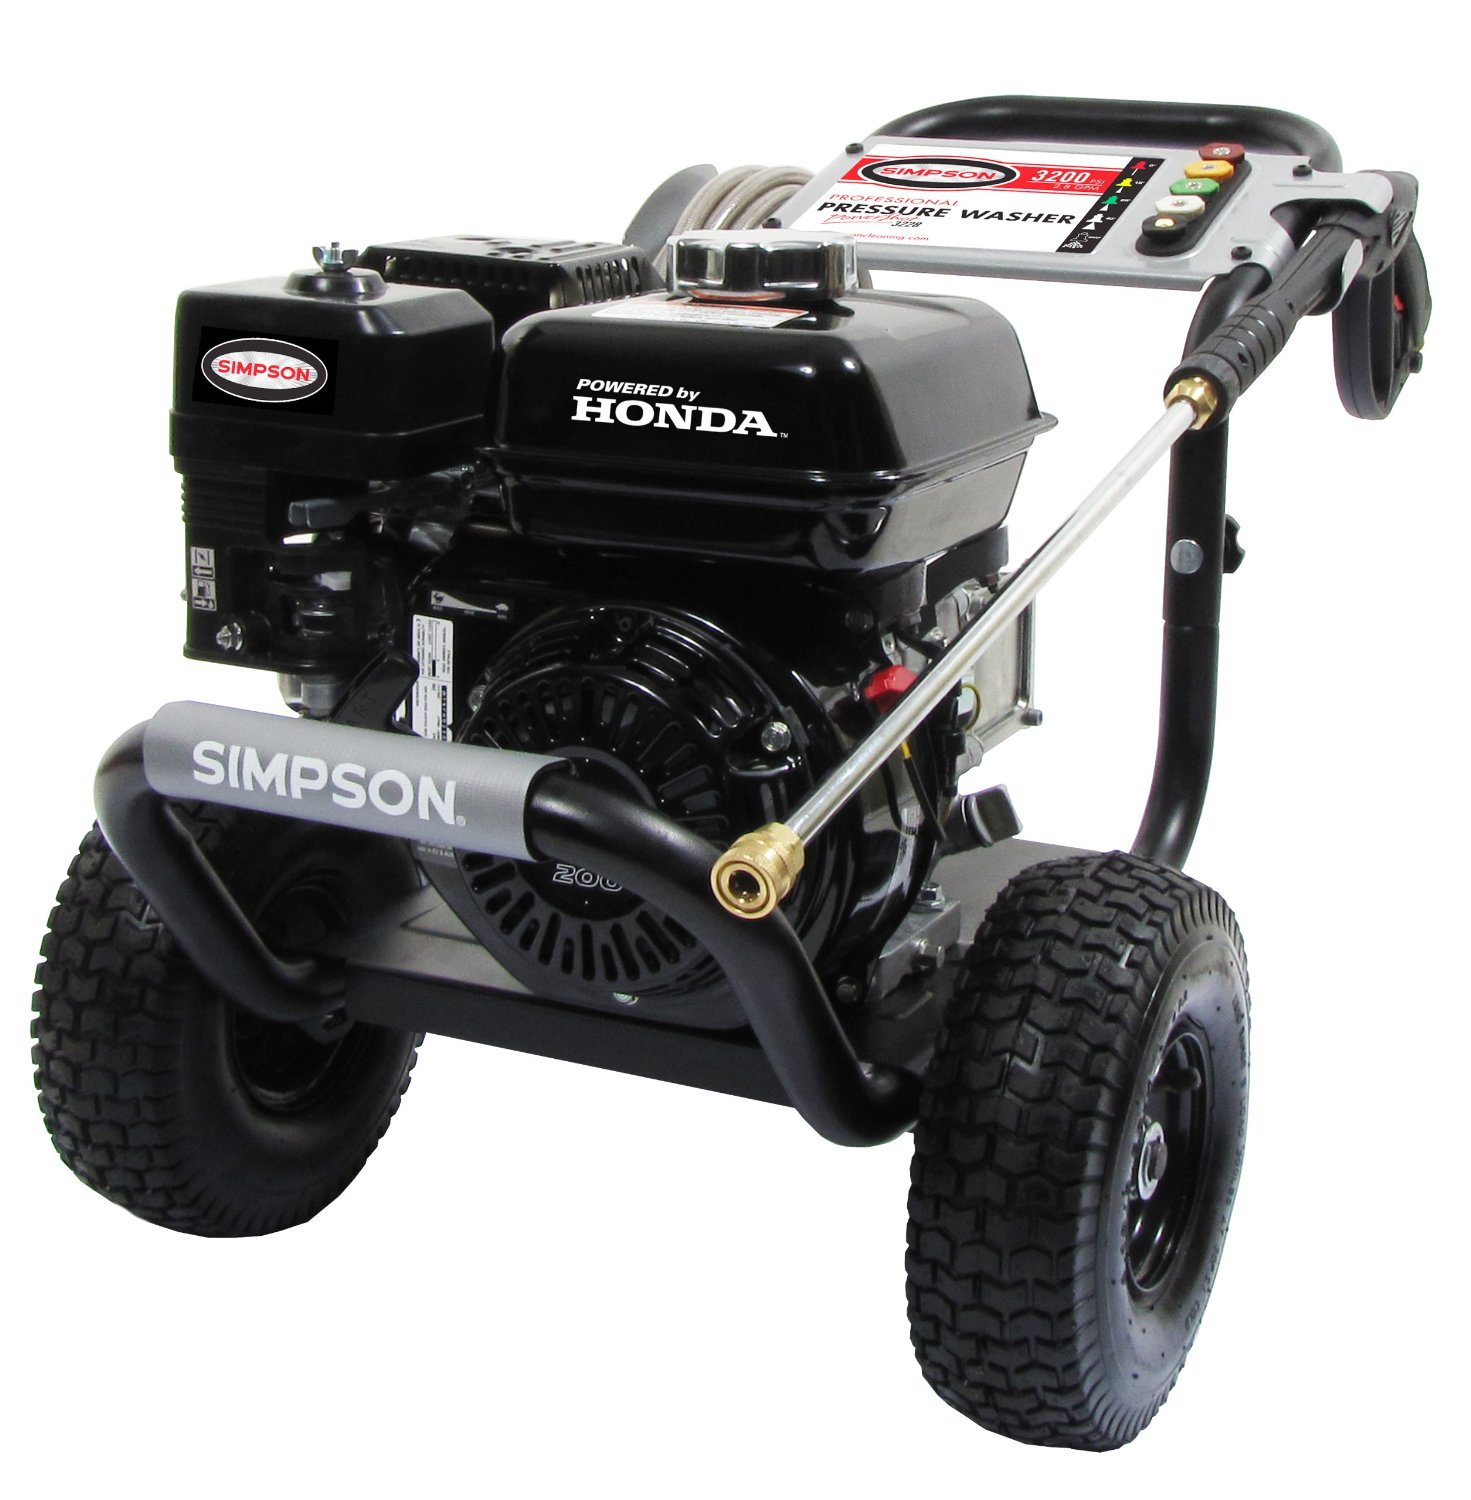 Simpson PowerShot Honda GX200 Gas Pressure Washer